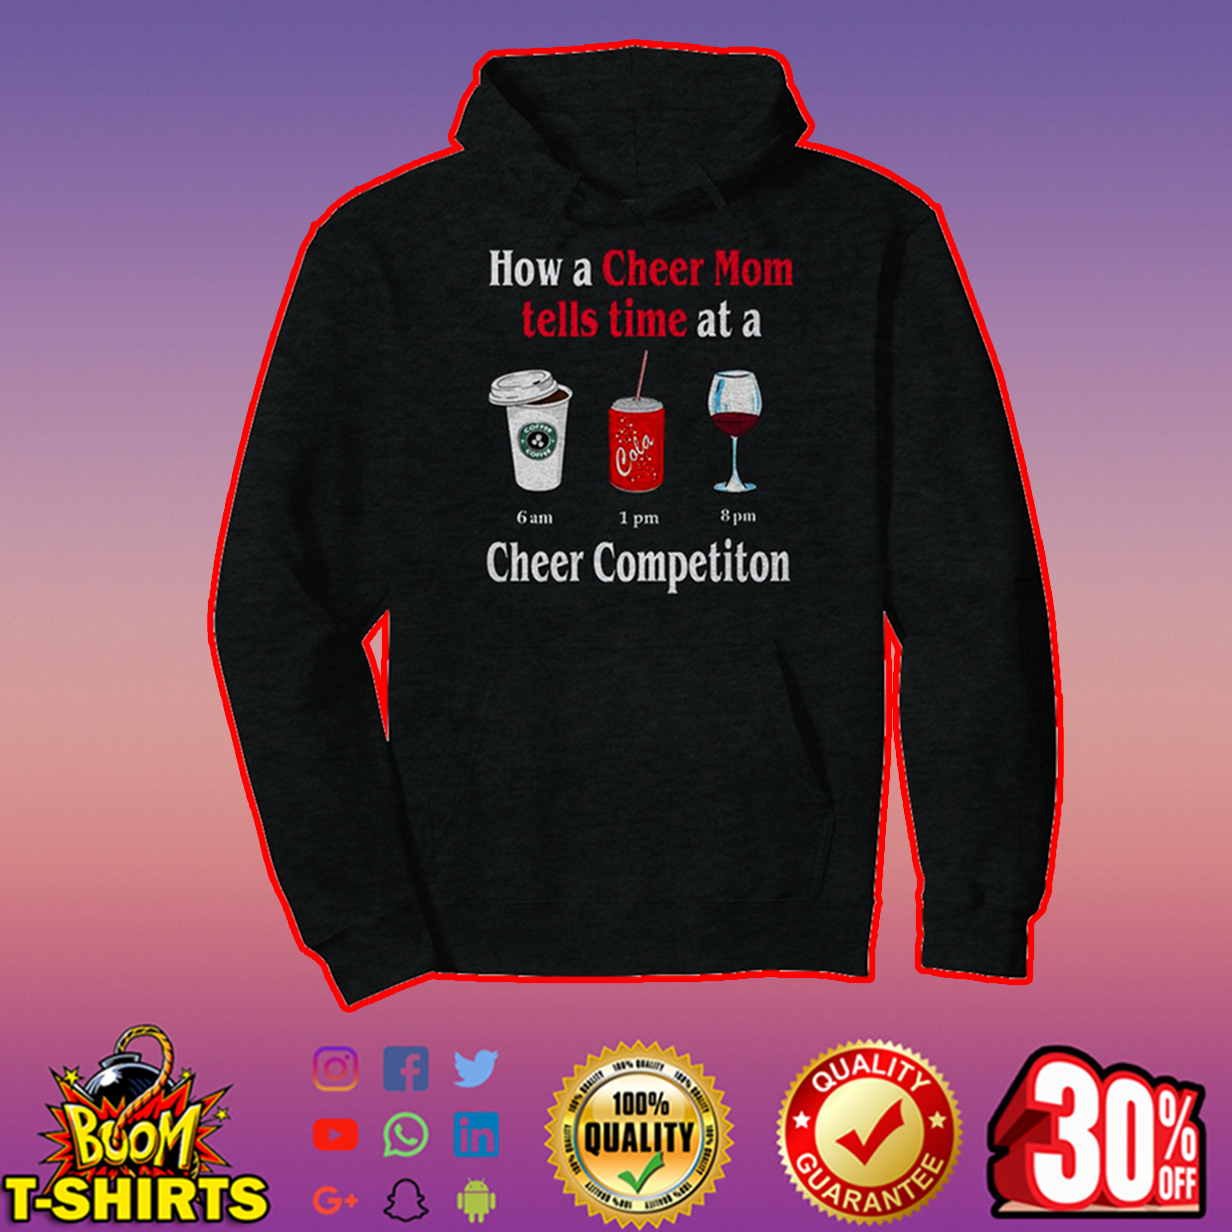 How a cheer mom tells time at a coffee 6 am cola 1 pm wine 8 pm cheer competiton hoodie